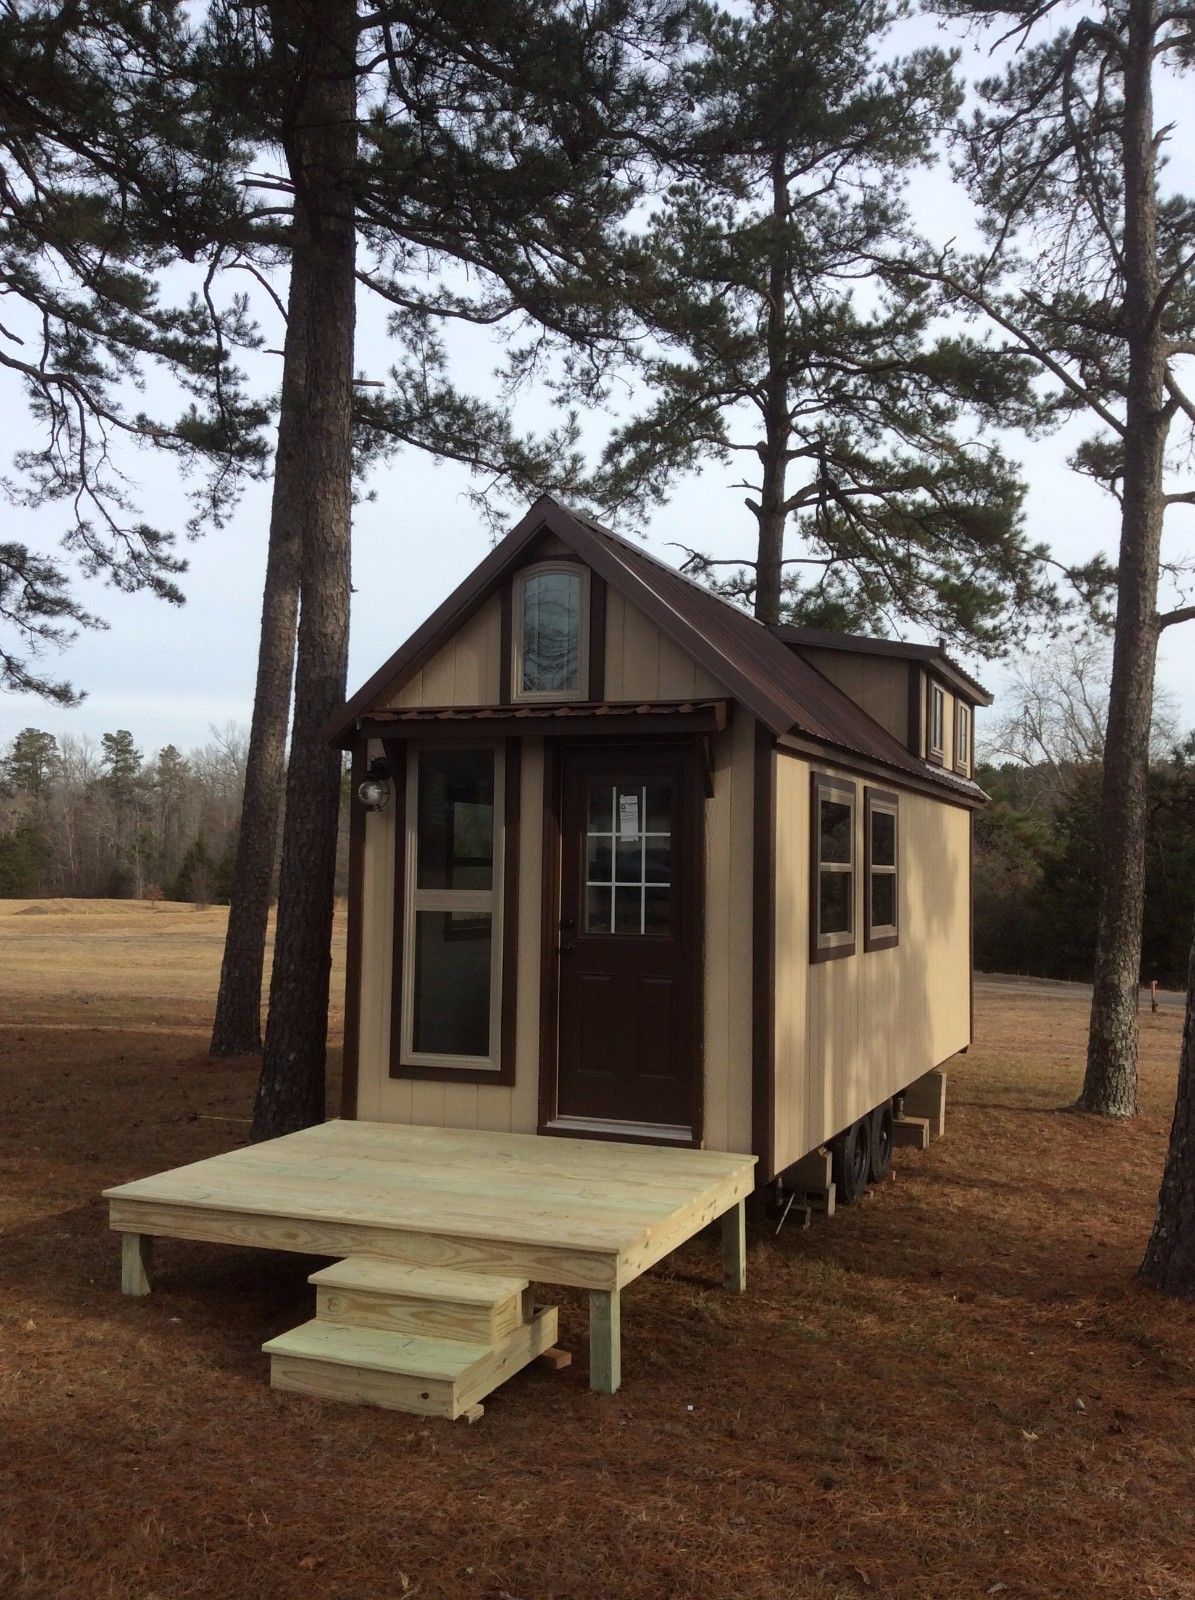 8x8 Bedroom Design: 4 Burner Cook Stove With Oven And Broiler Refrigerator